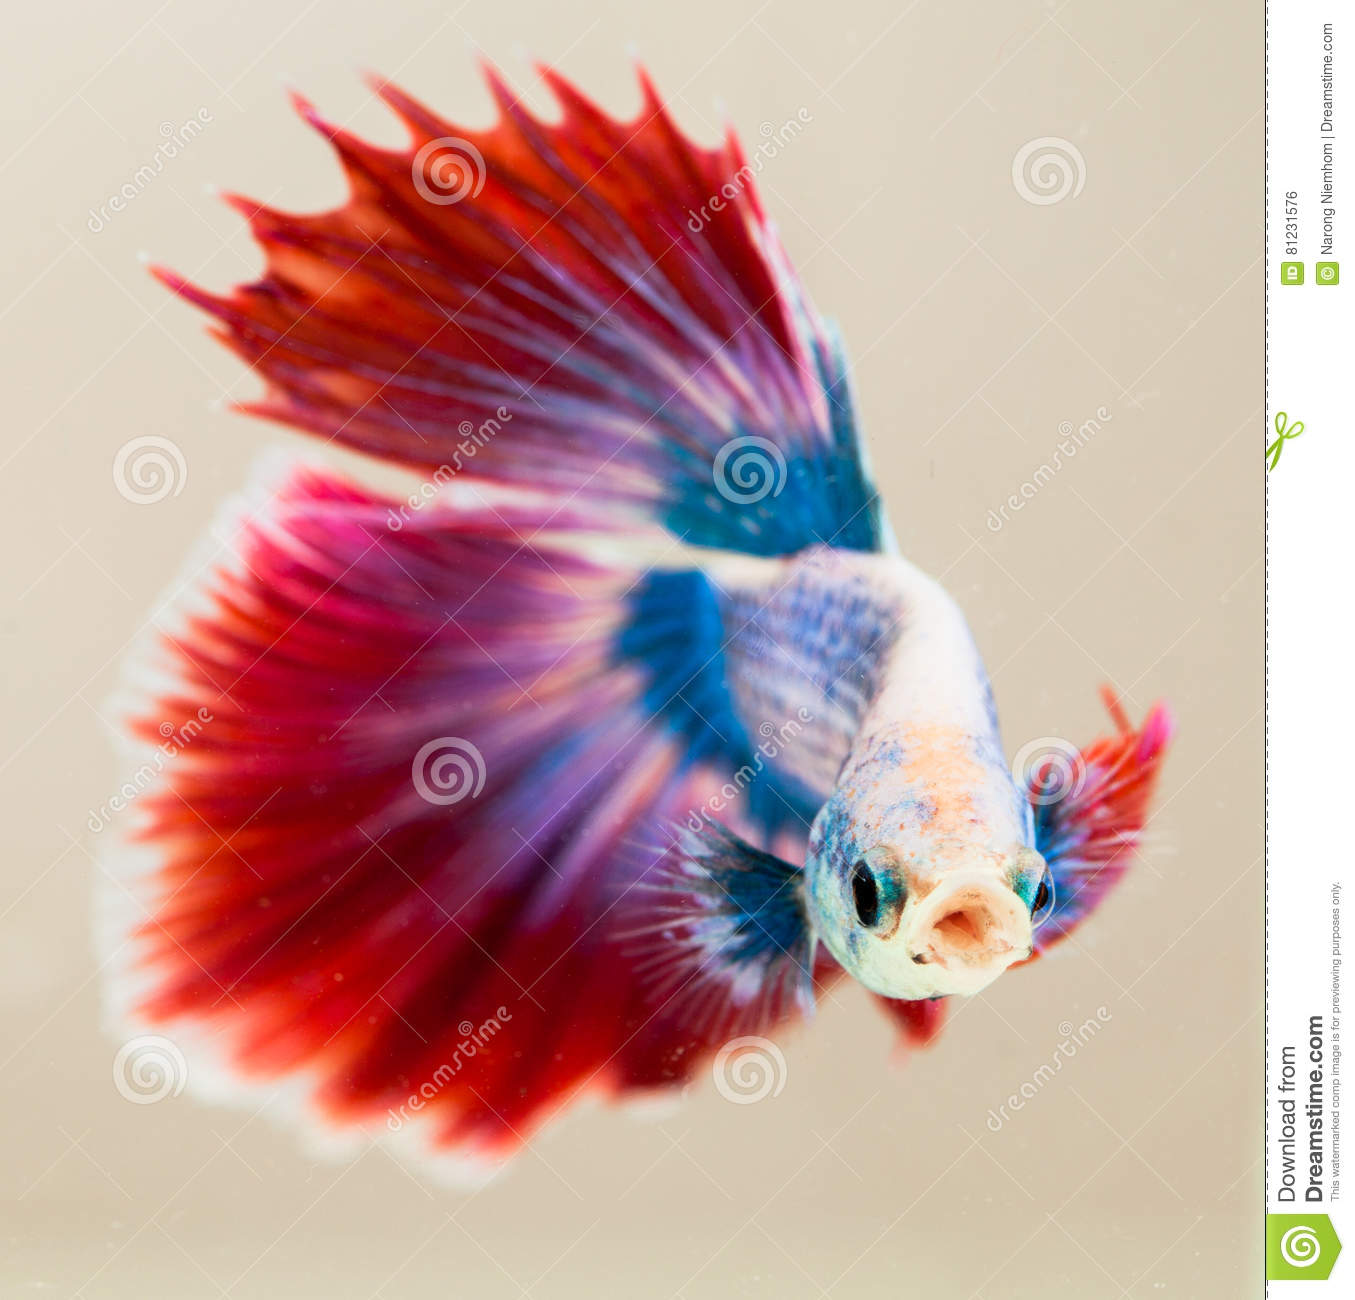 The Siamese fighting fish stock photo. Image of freshwater - 81231576